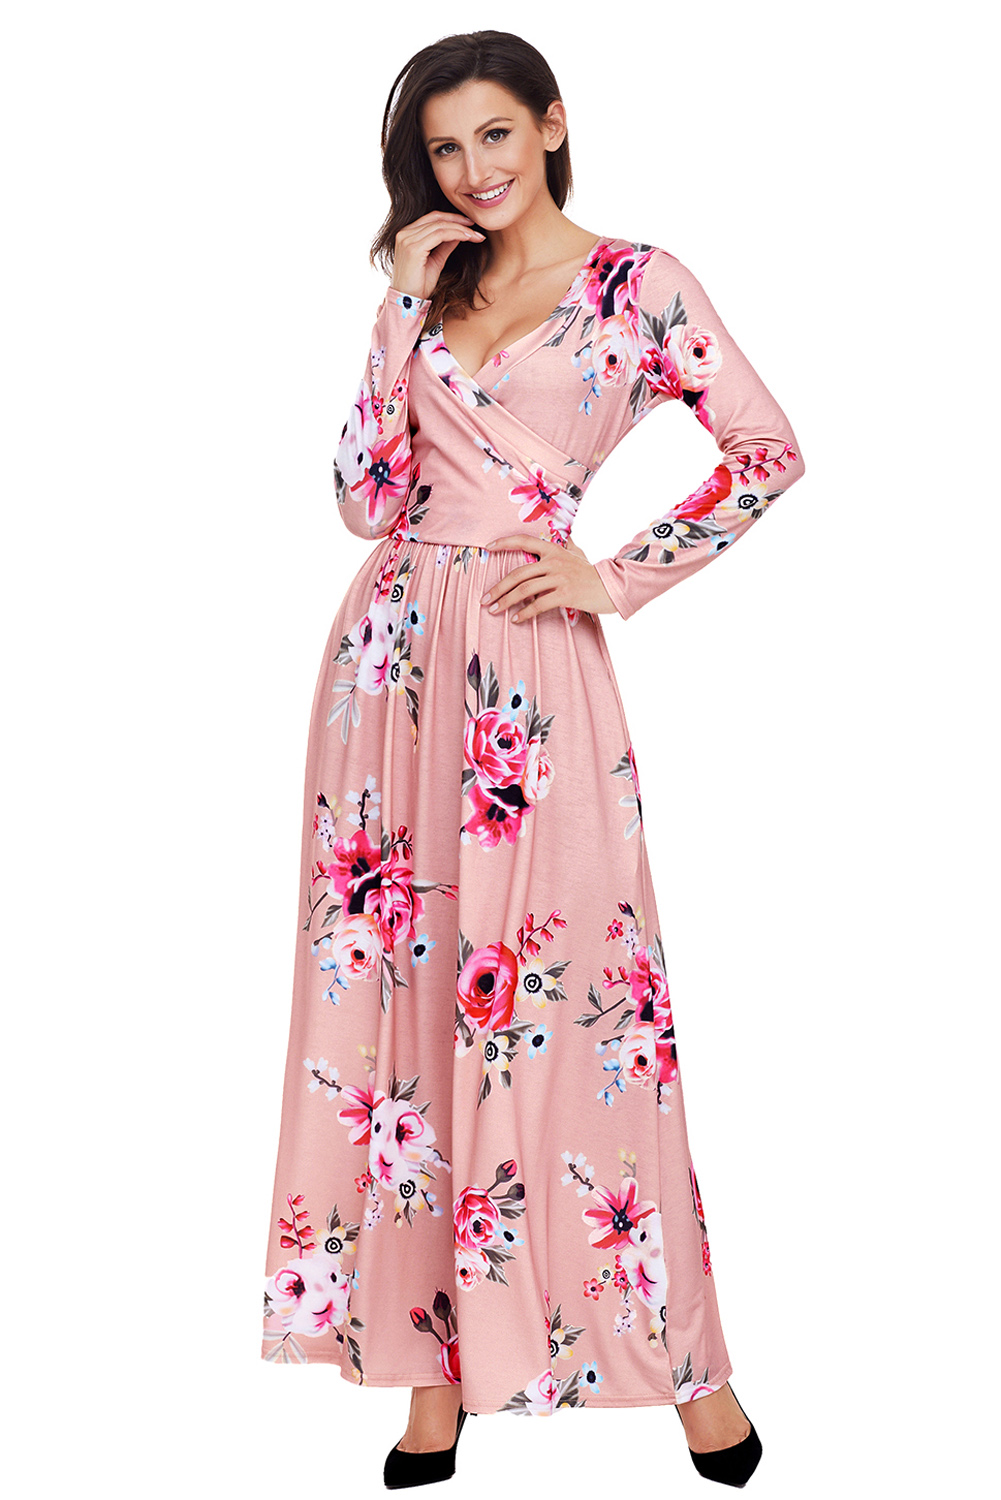 BY61772-10 Mauve Floral Surplice Long Sleeve Maxi Boho Dress